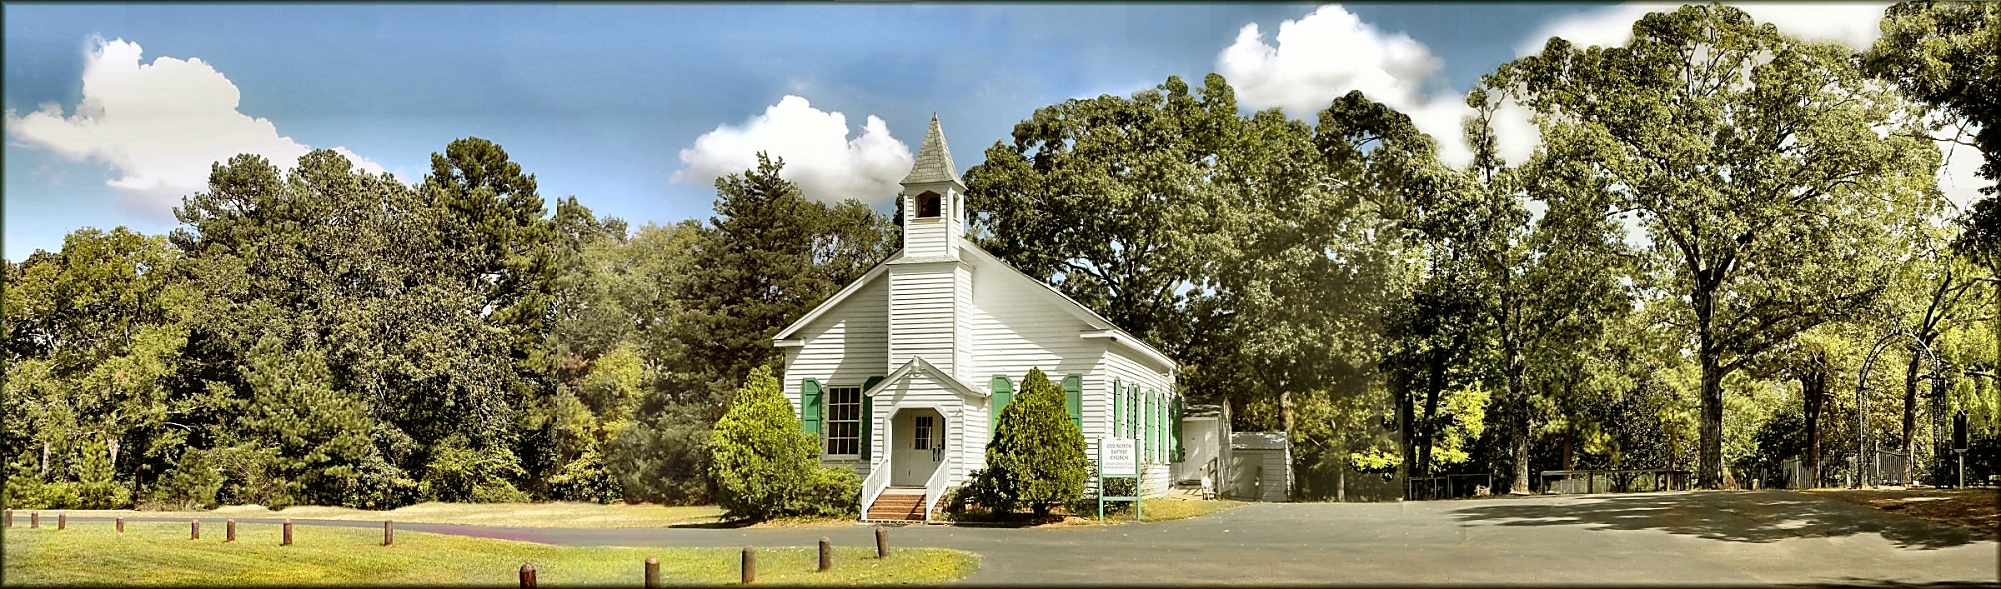 Old North Baptist Church in Historic Nacogdoches County Texas